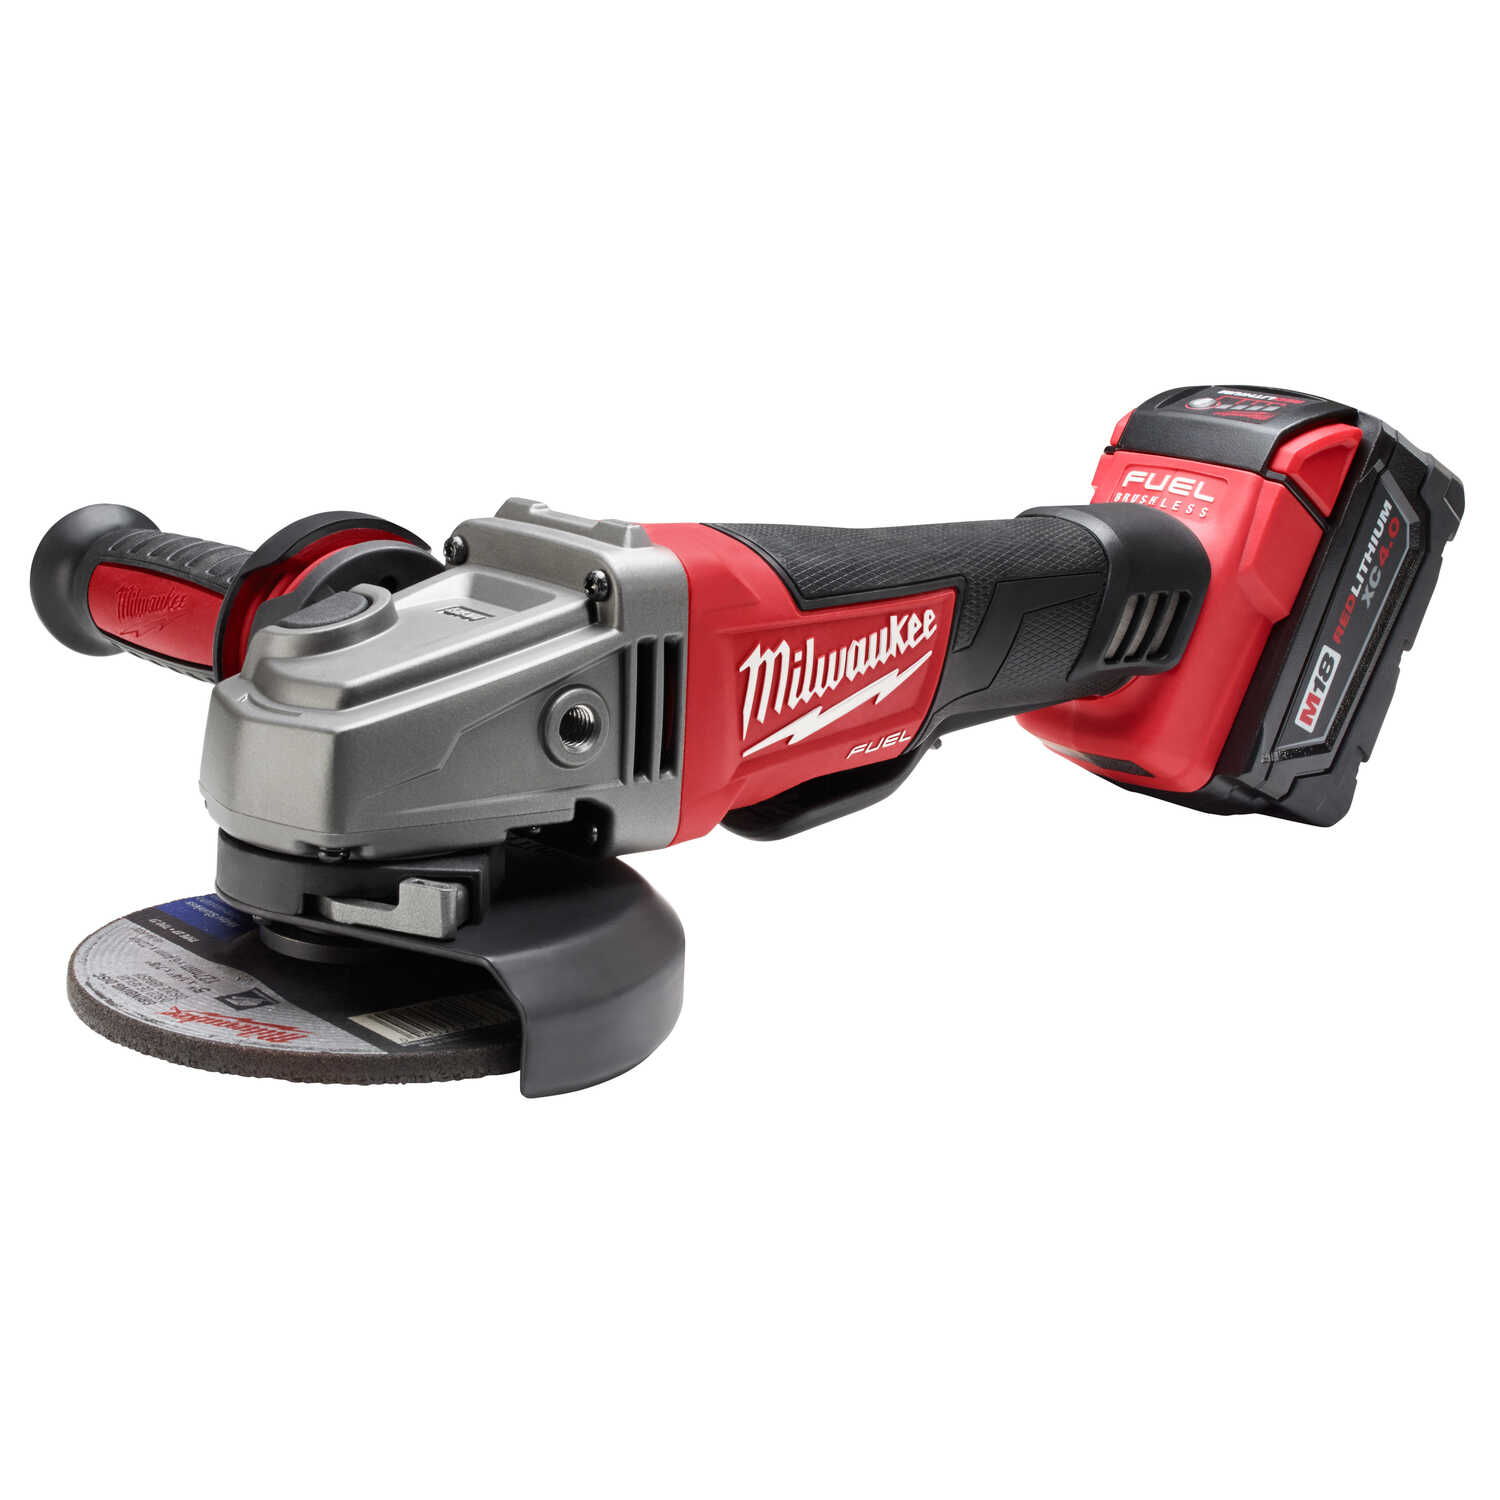 Milwaukee  M18 FUEL  Cordless  18 volt 4-1/2 to 5 in. Angle Grinder  Kit  8500 rpm